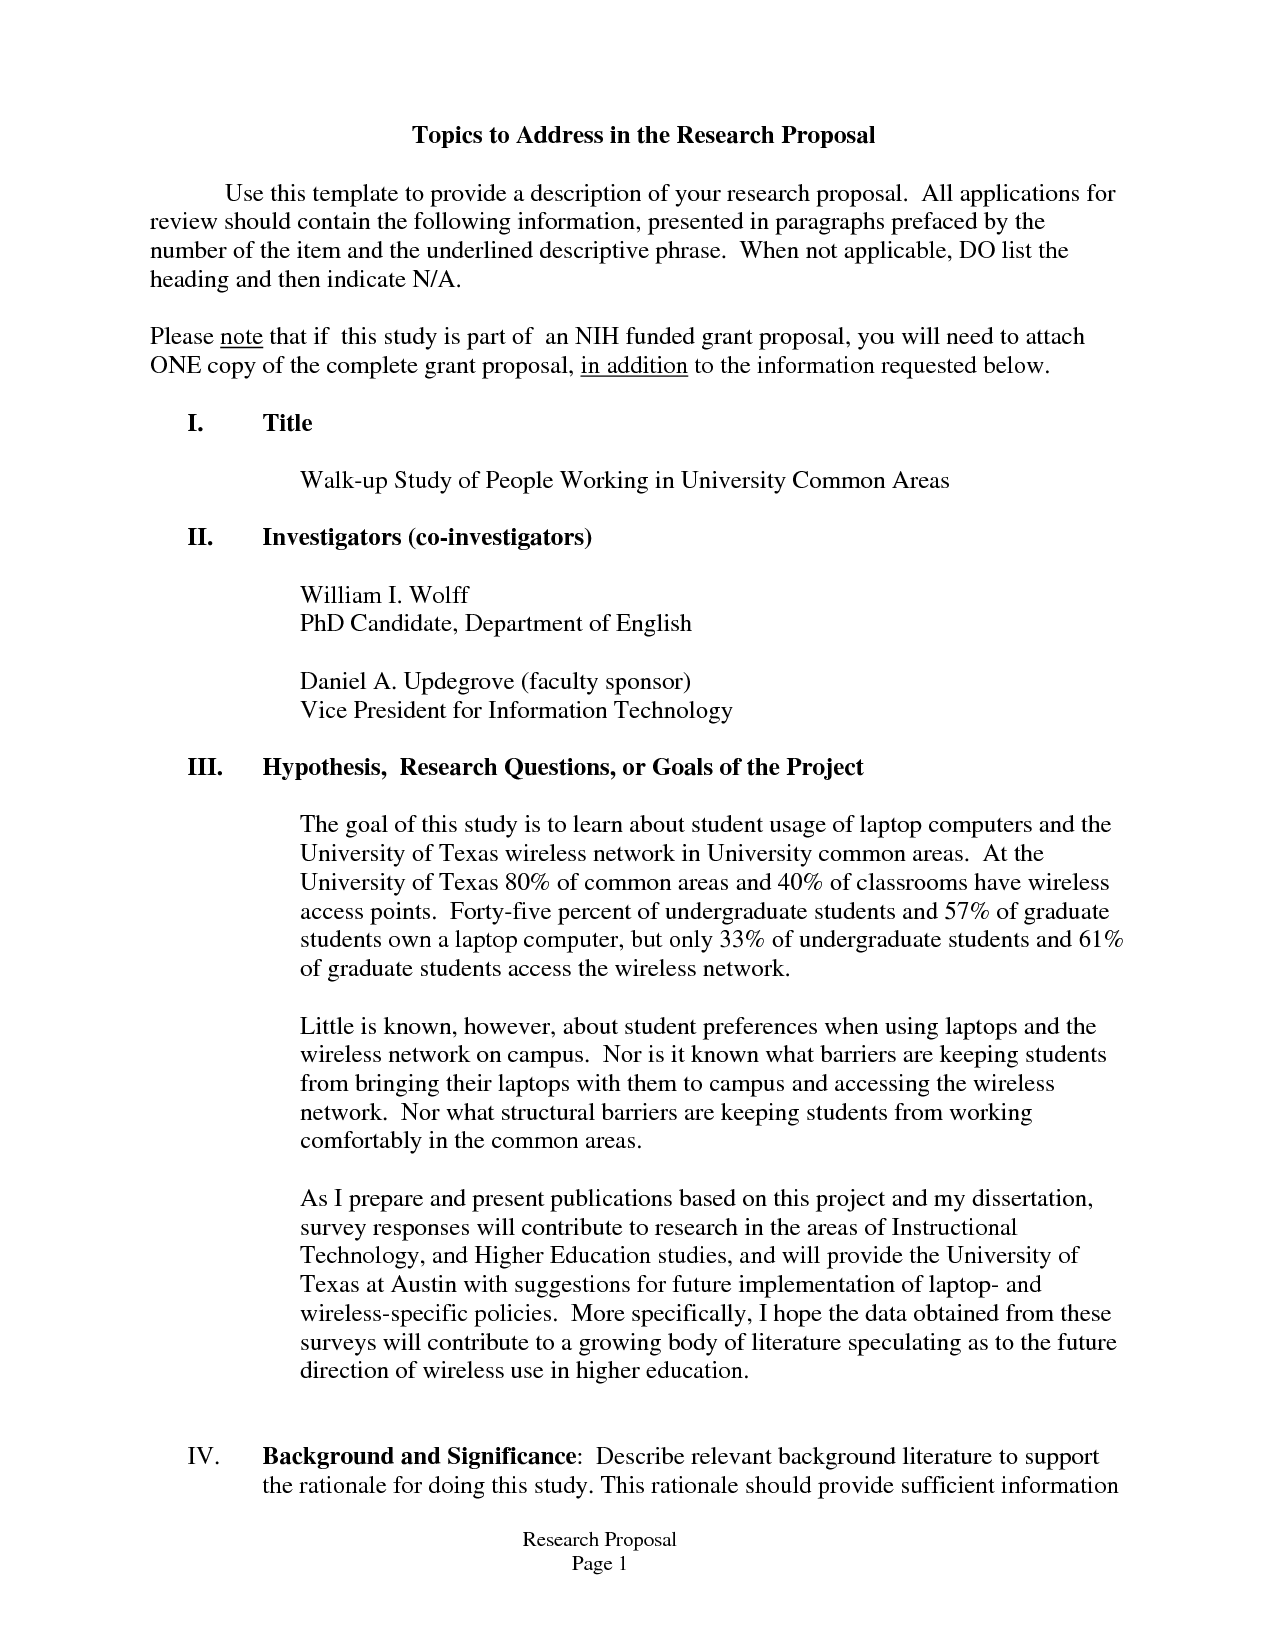 Critical Analysis Essay Example Paper Proposal Argument Essay Examples Commonpenceco Proposal Argument Essay  Examples Essay On Health Care Reform also High School Persuasive Essay Examples Persuasive Essay Topics High School Students Analytical Essay  Science Essay Examples